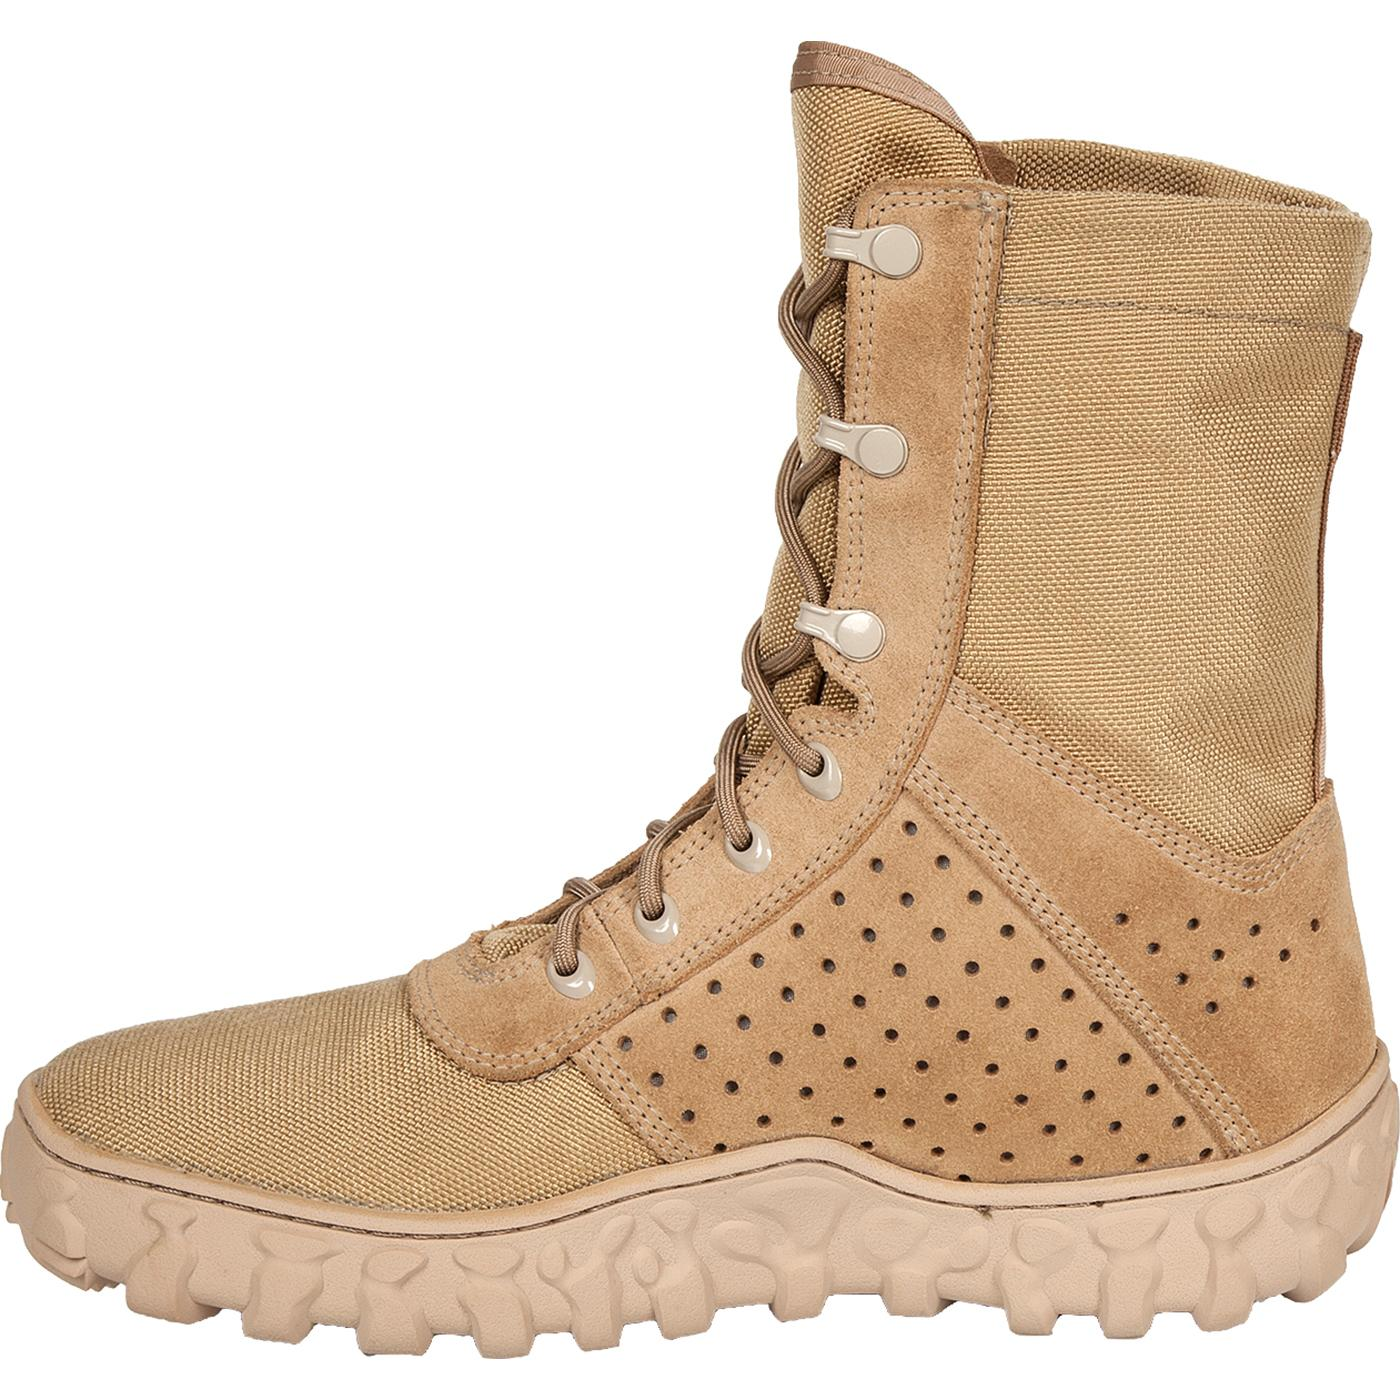 Rocky S2V Military Jungle Boots in Desert Tan, #RKYC002